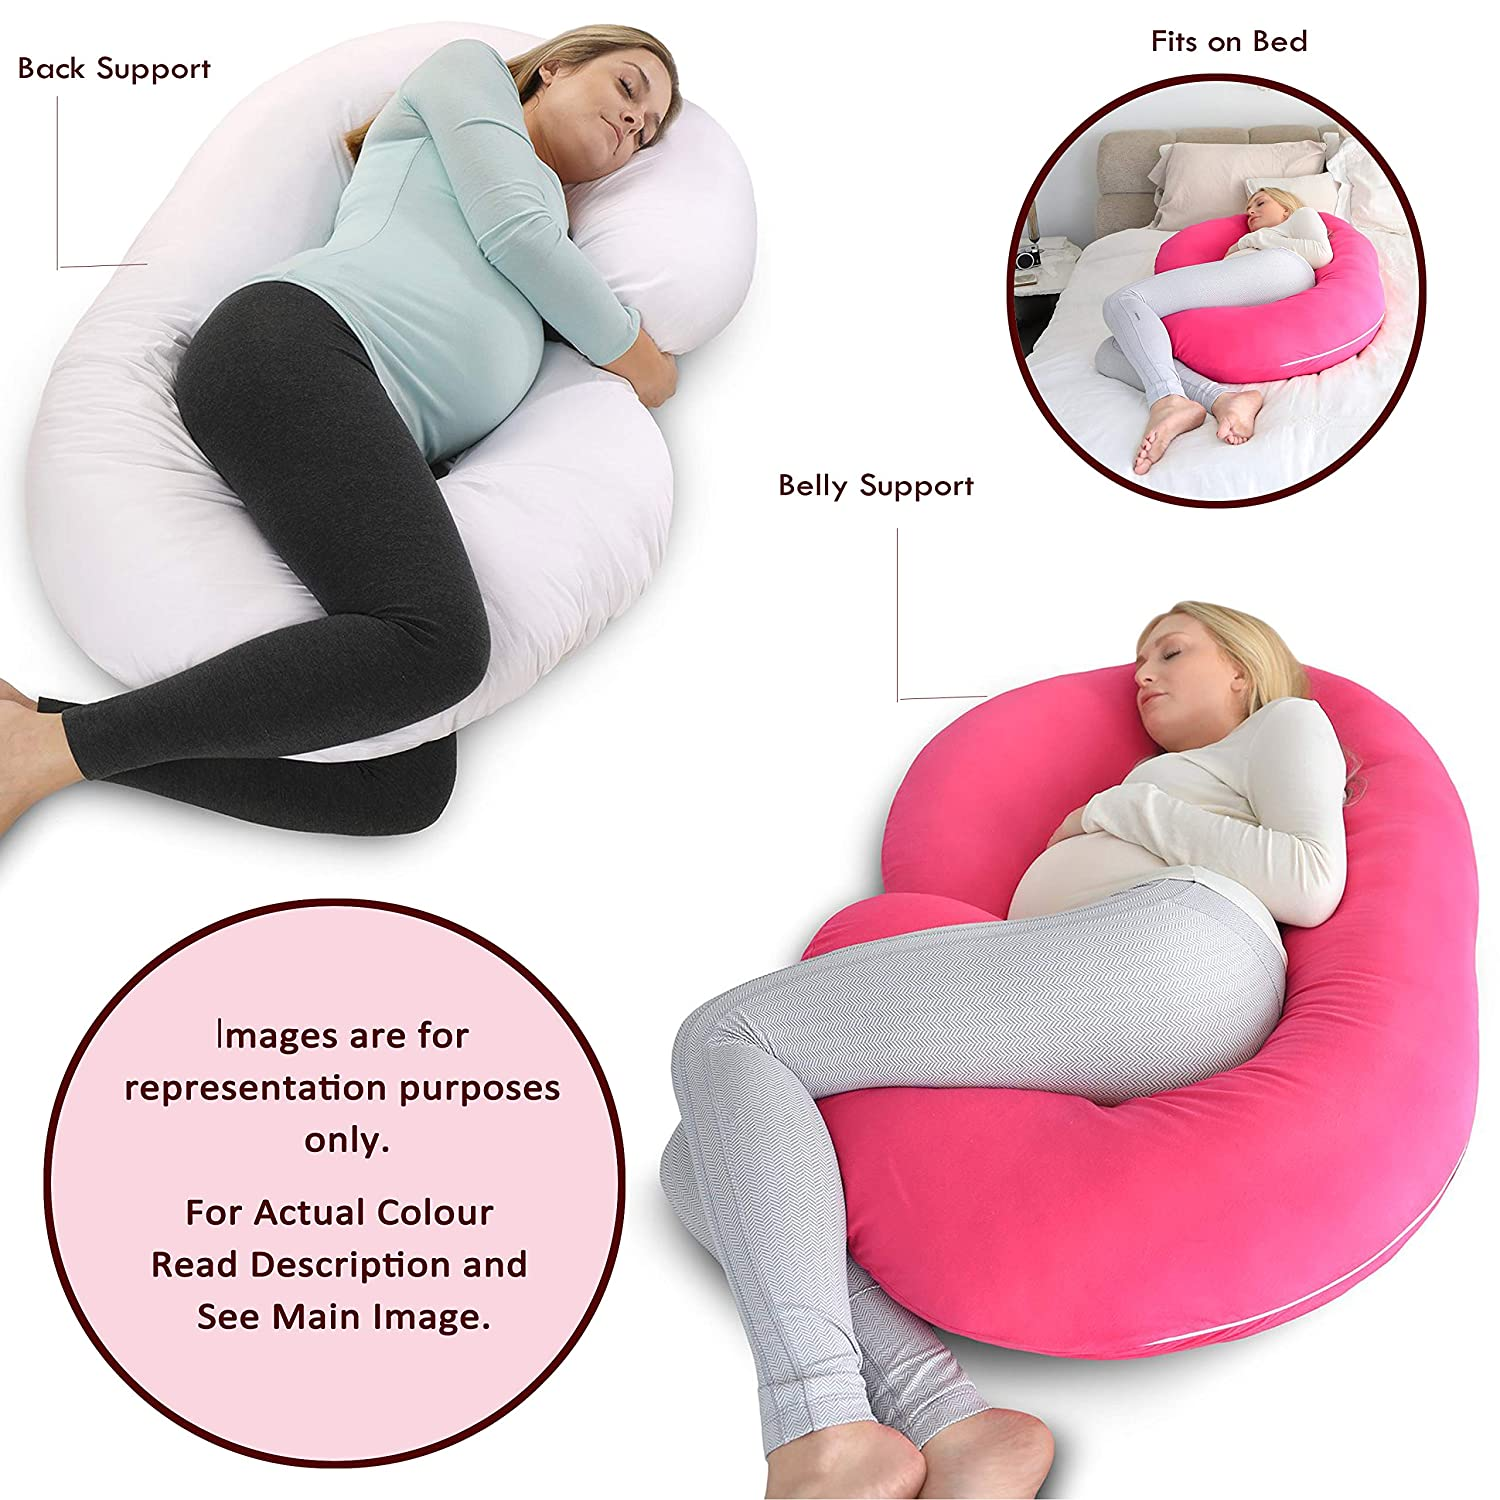 Gifts for Women - Pregancy Pillow